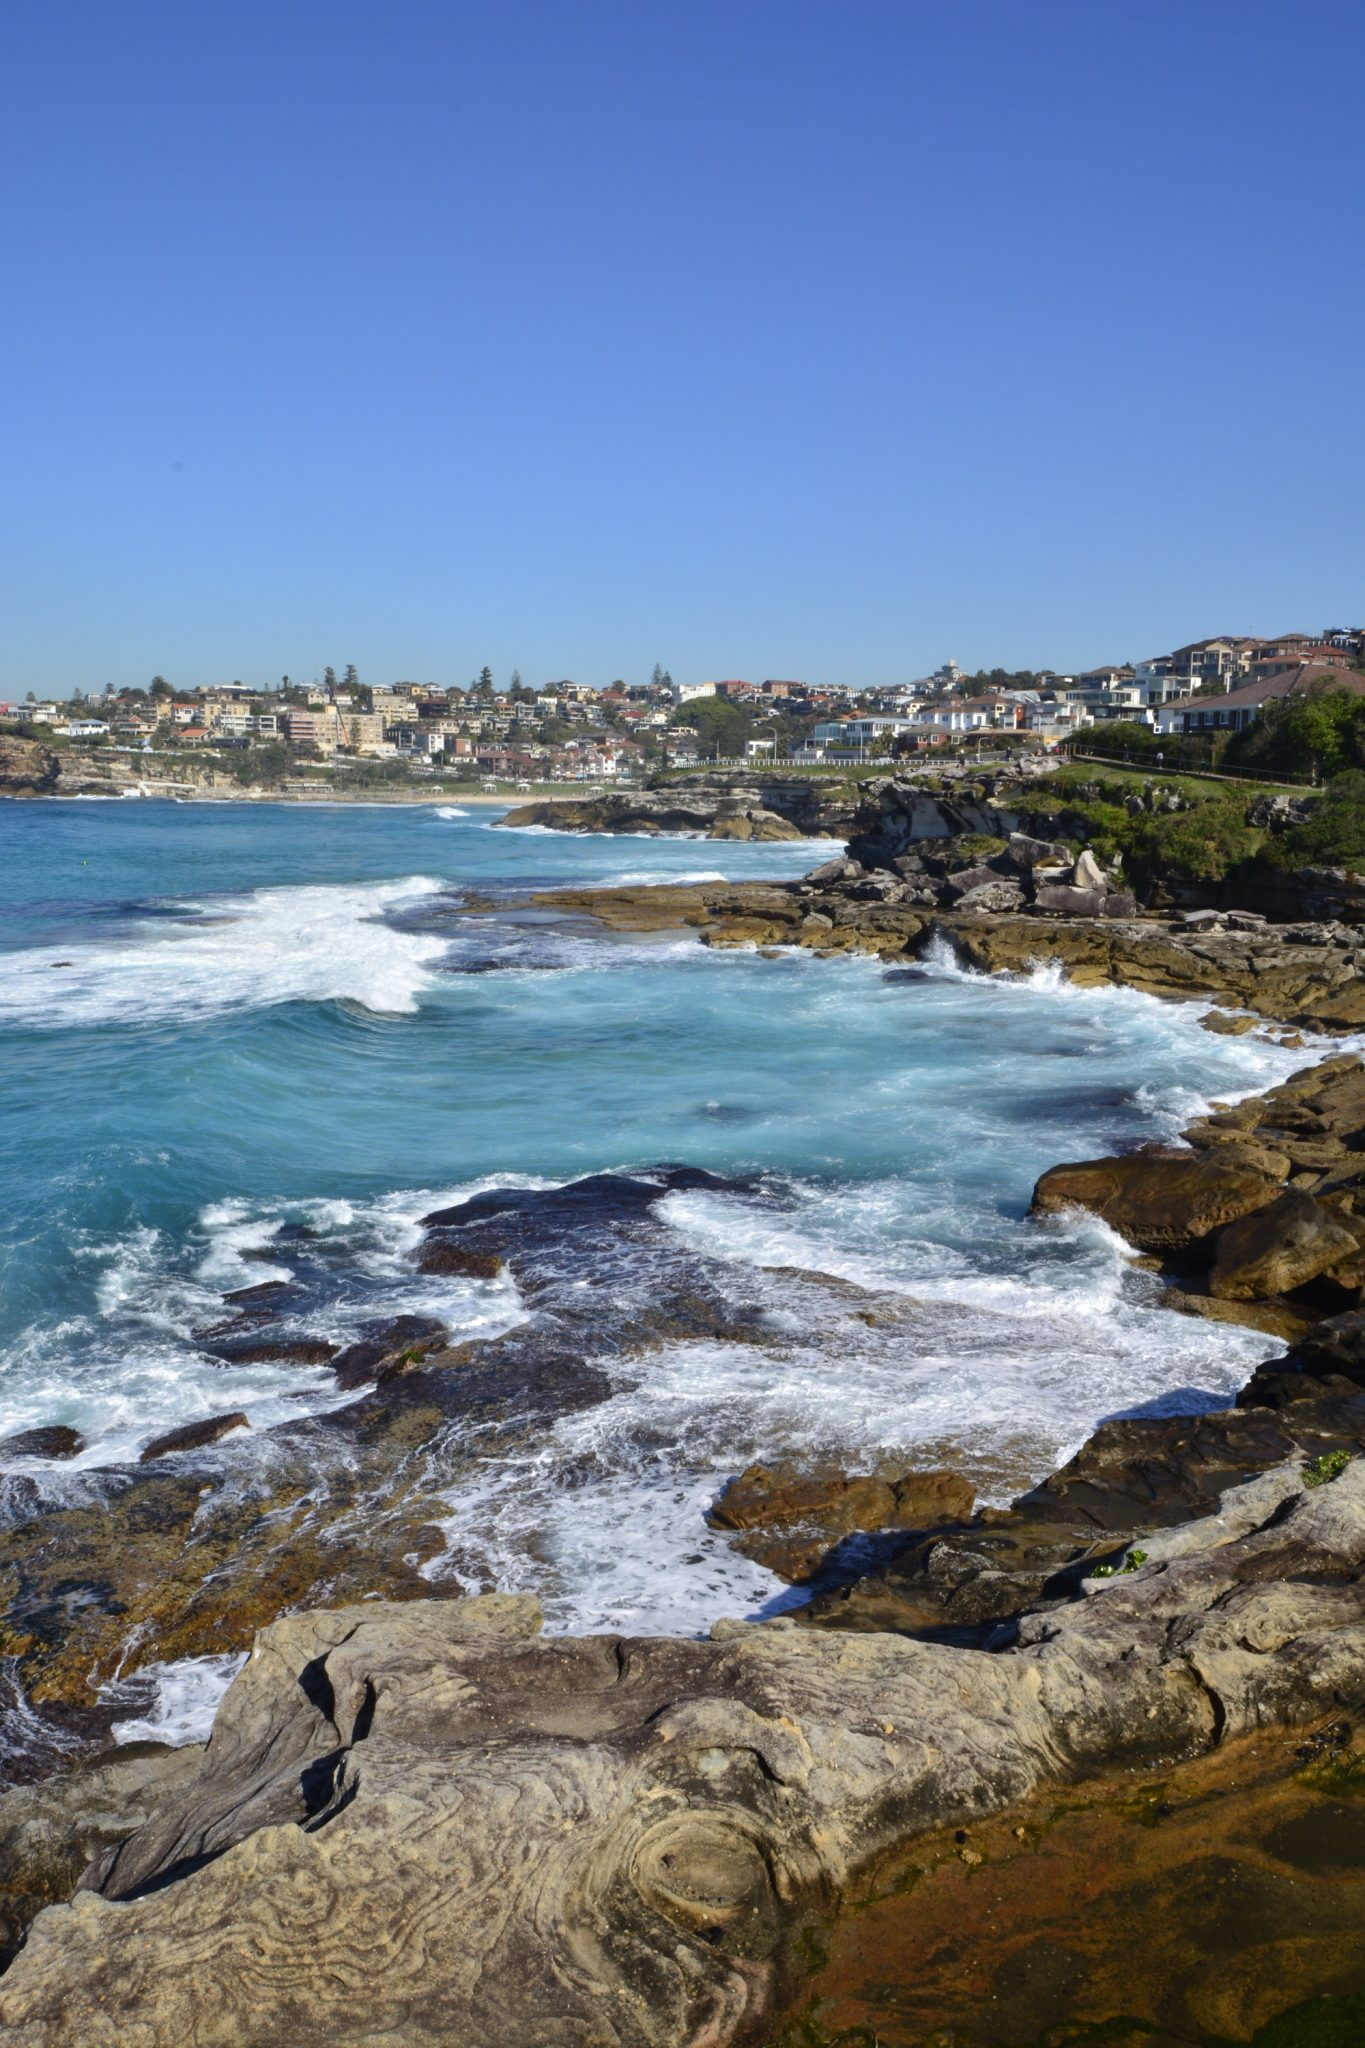 Tamarama beach, ocean walk from Bondi beach to Coogee beach